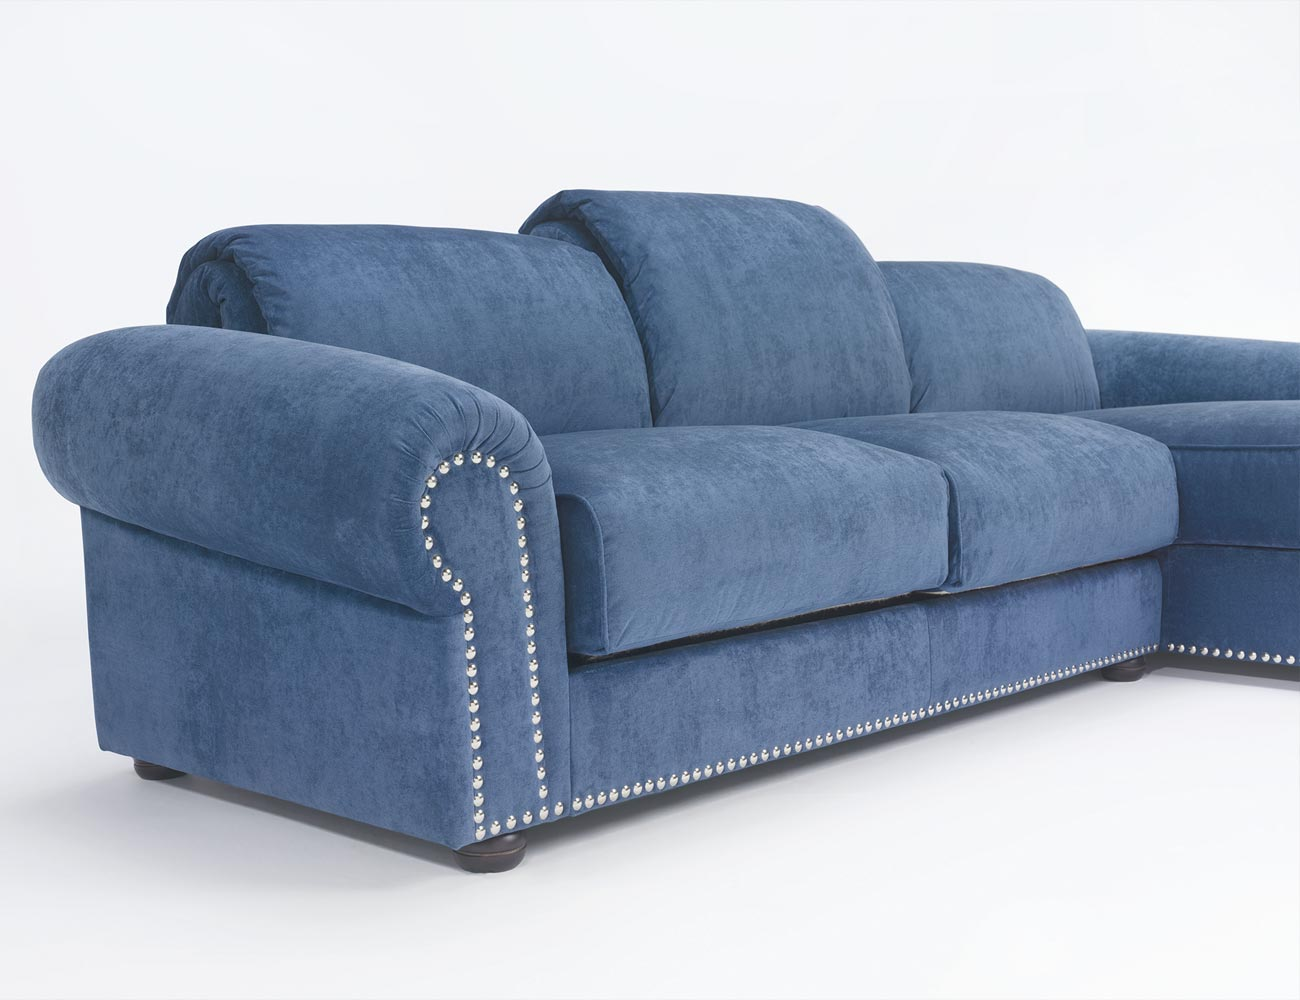 Sofa chaiselongue gran lujo decorativo azul 12